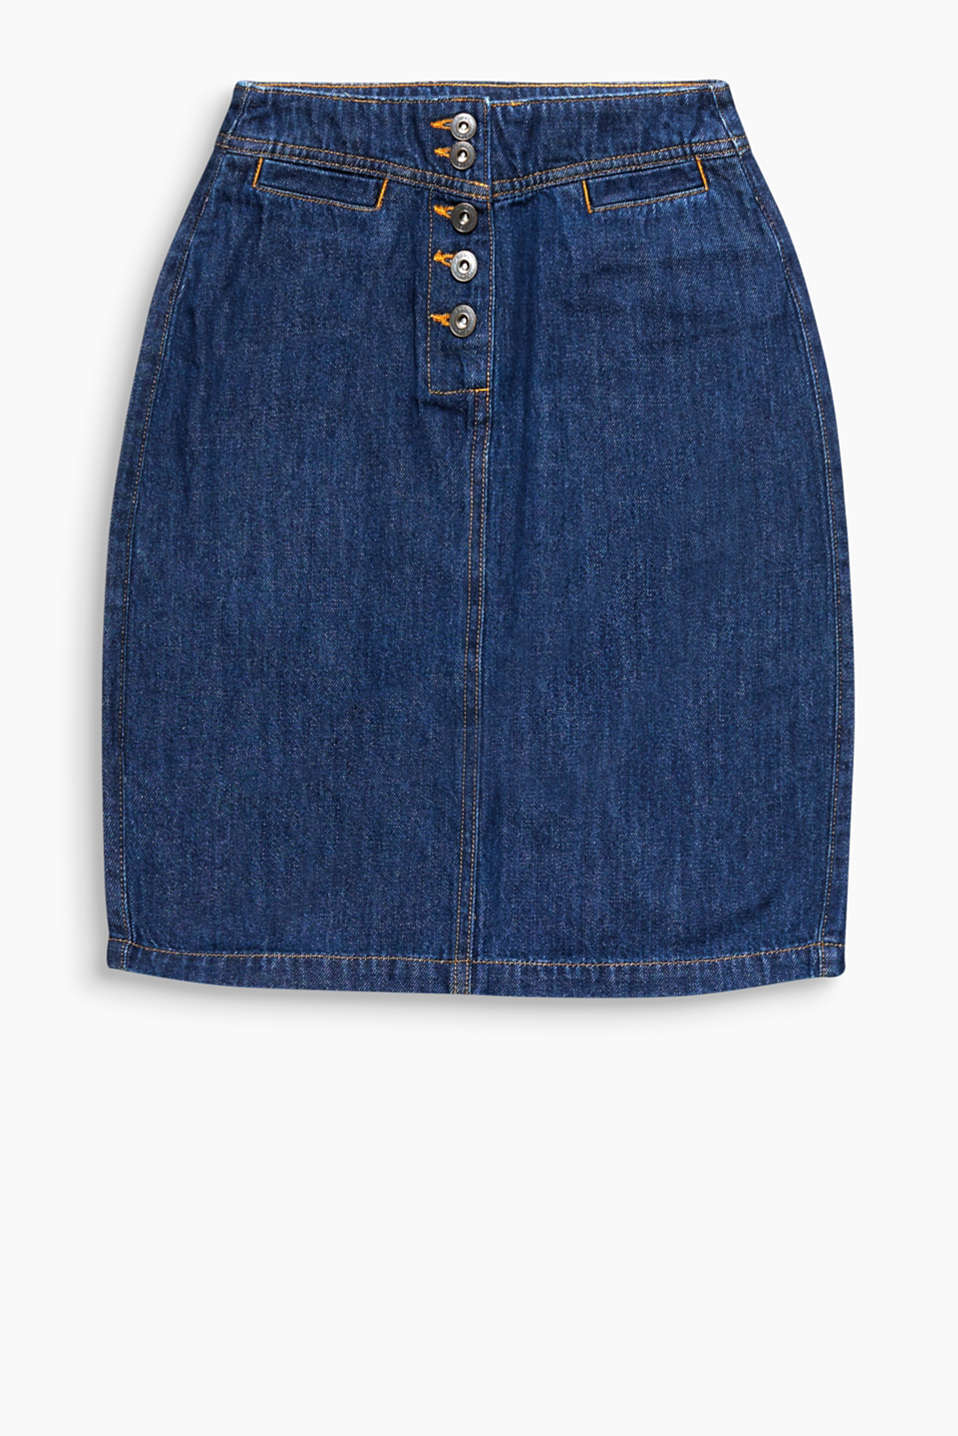 All-time fave: figure-hugging denim skirt with a button placket made of organic cotton